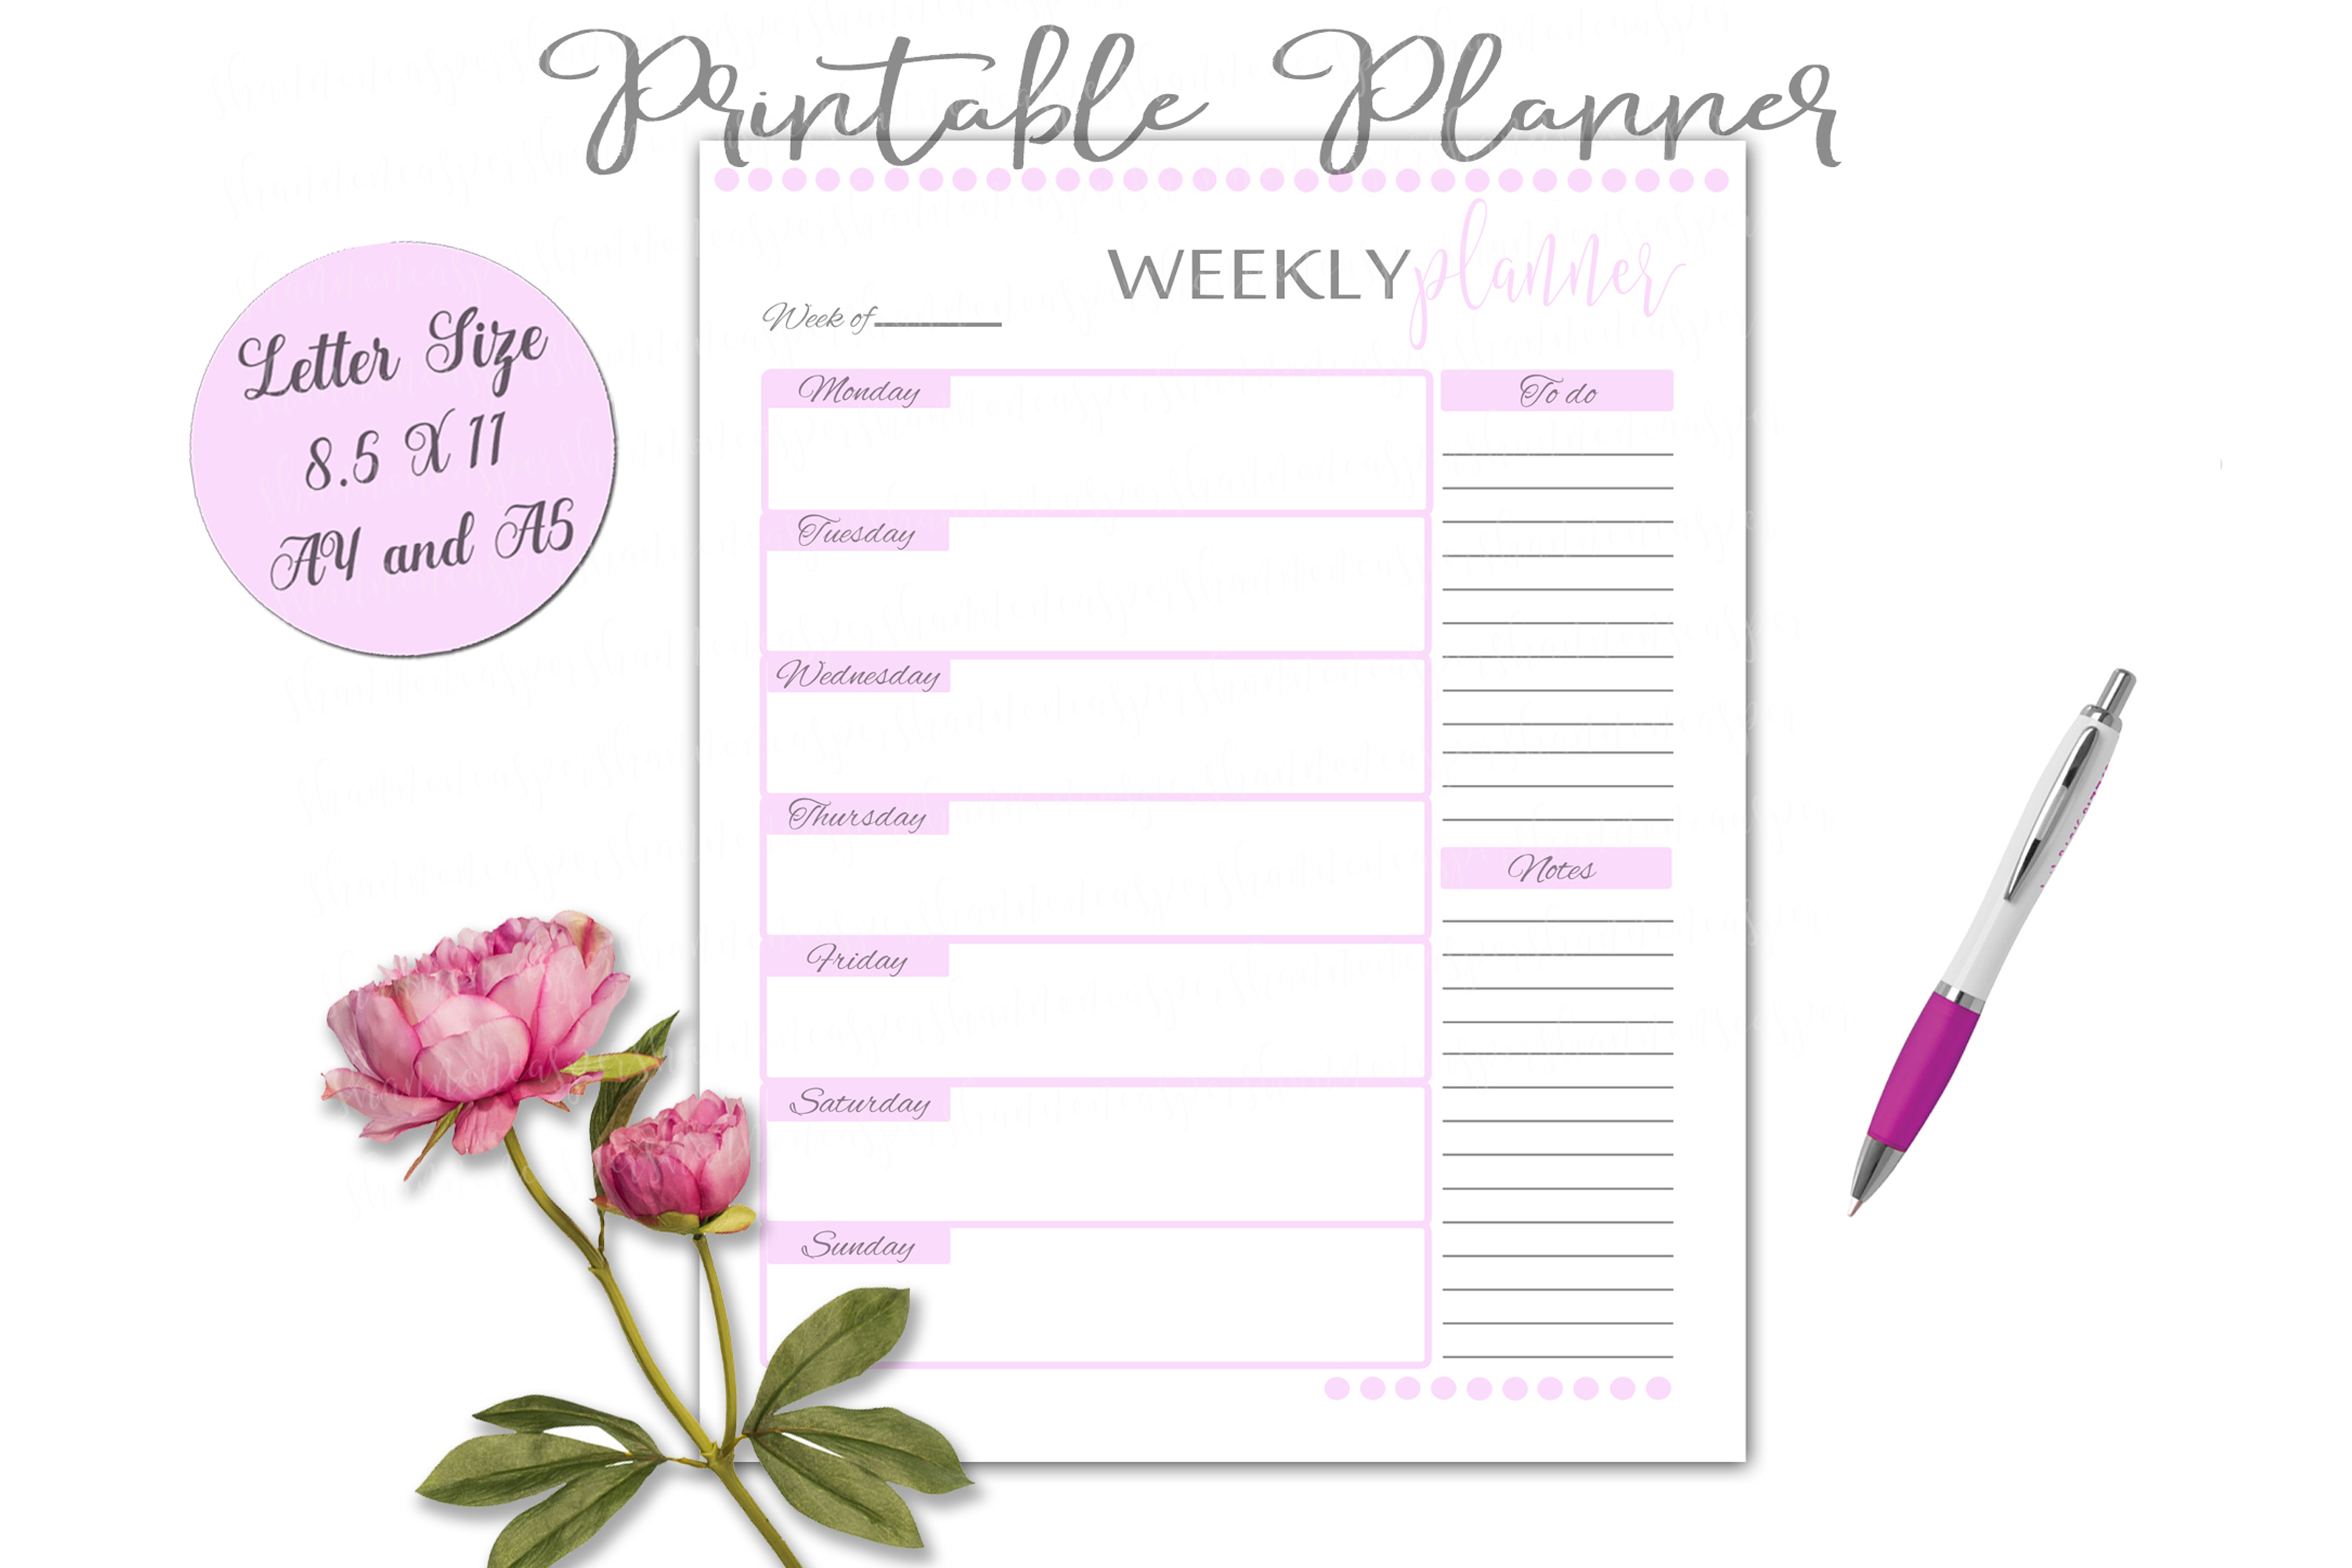 Download Free Weekly Planner Printable Page Graphic By Shannon Casper for Cricut Explore, Silhouette and other cutting machines.